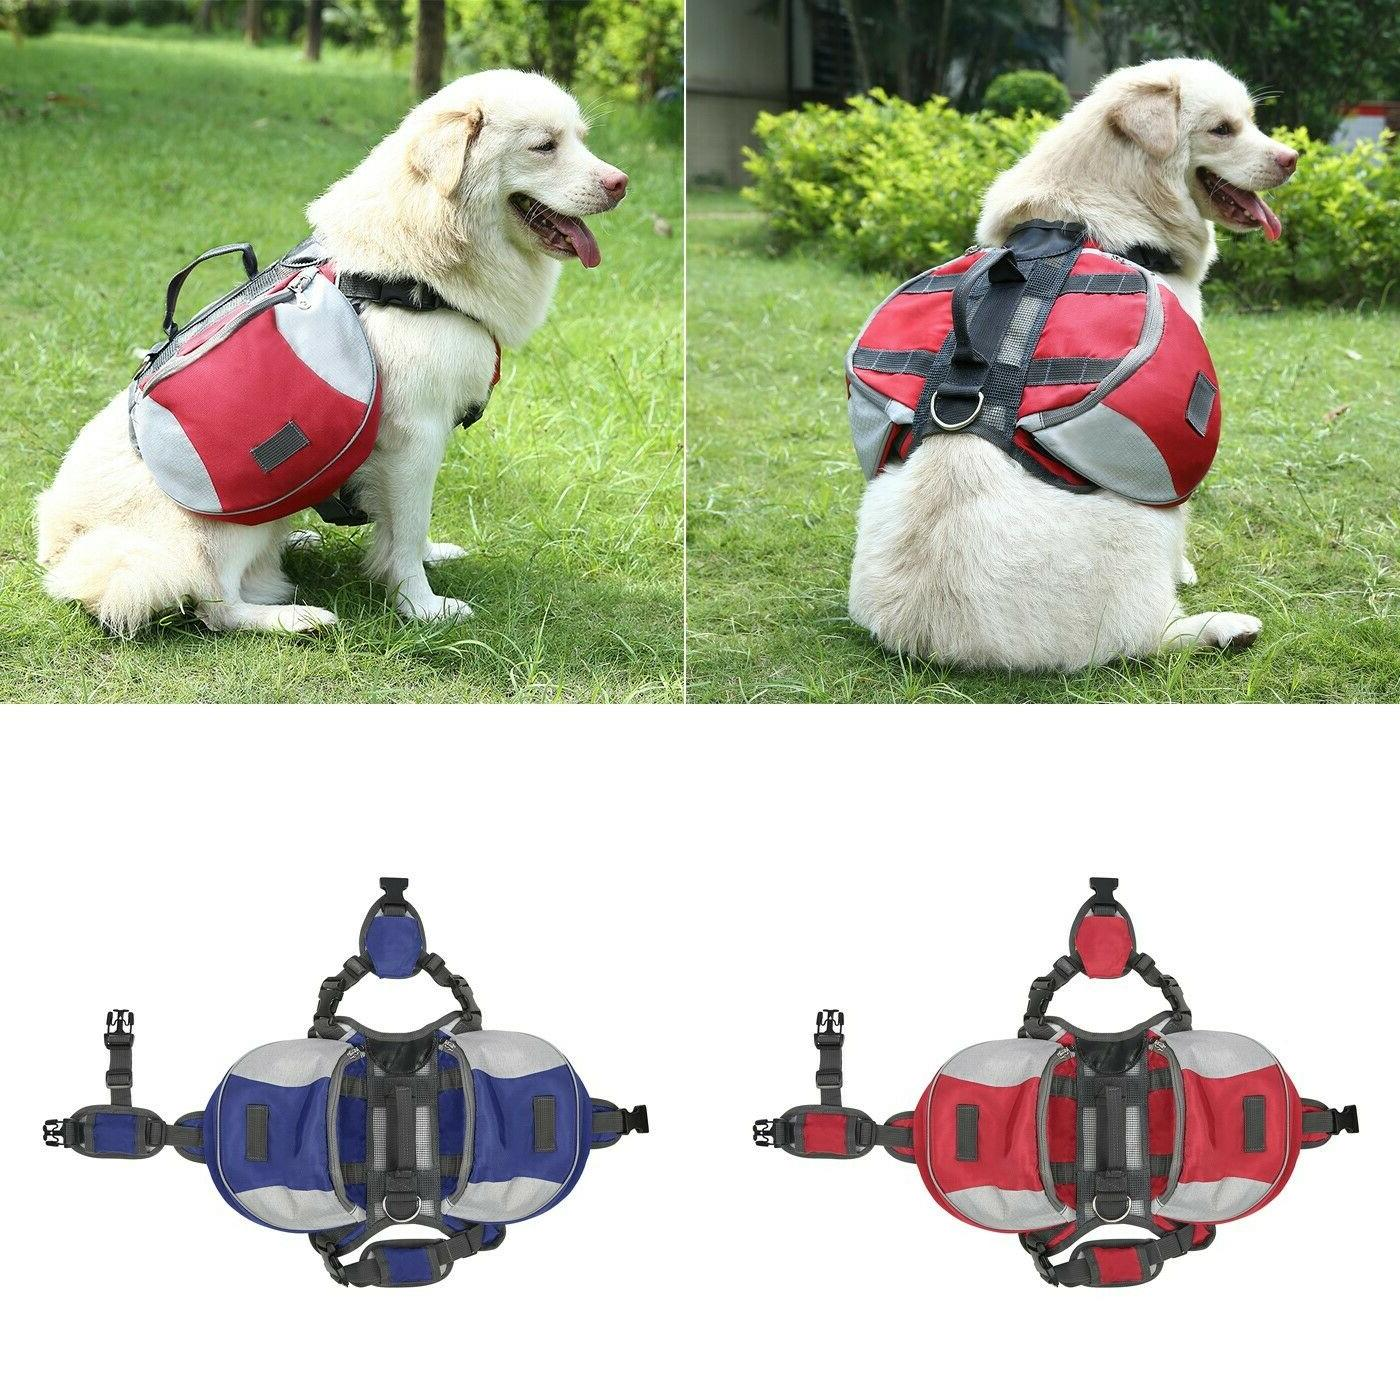 dog backpack camping hiking travel gear